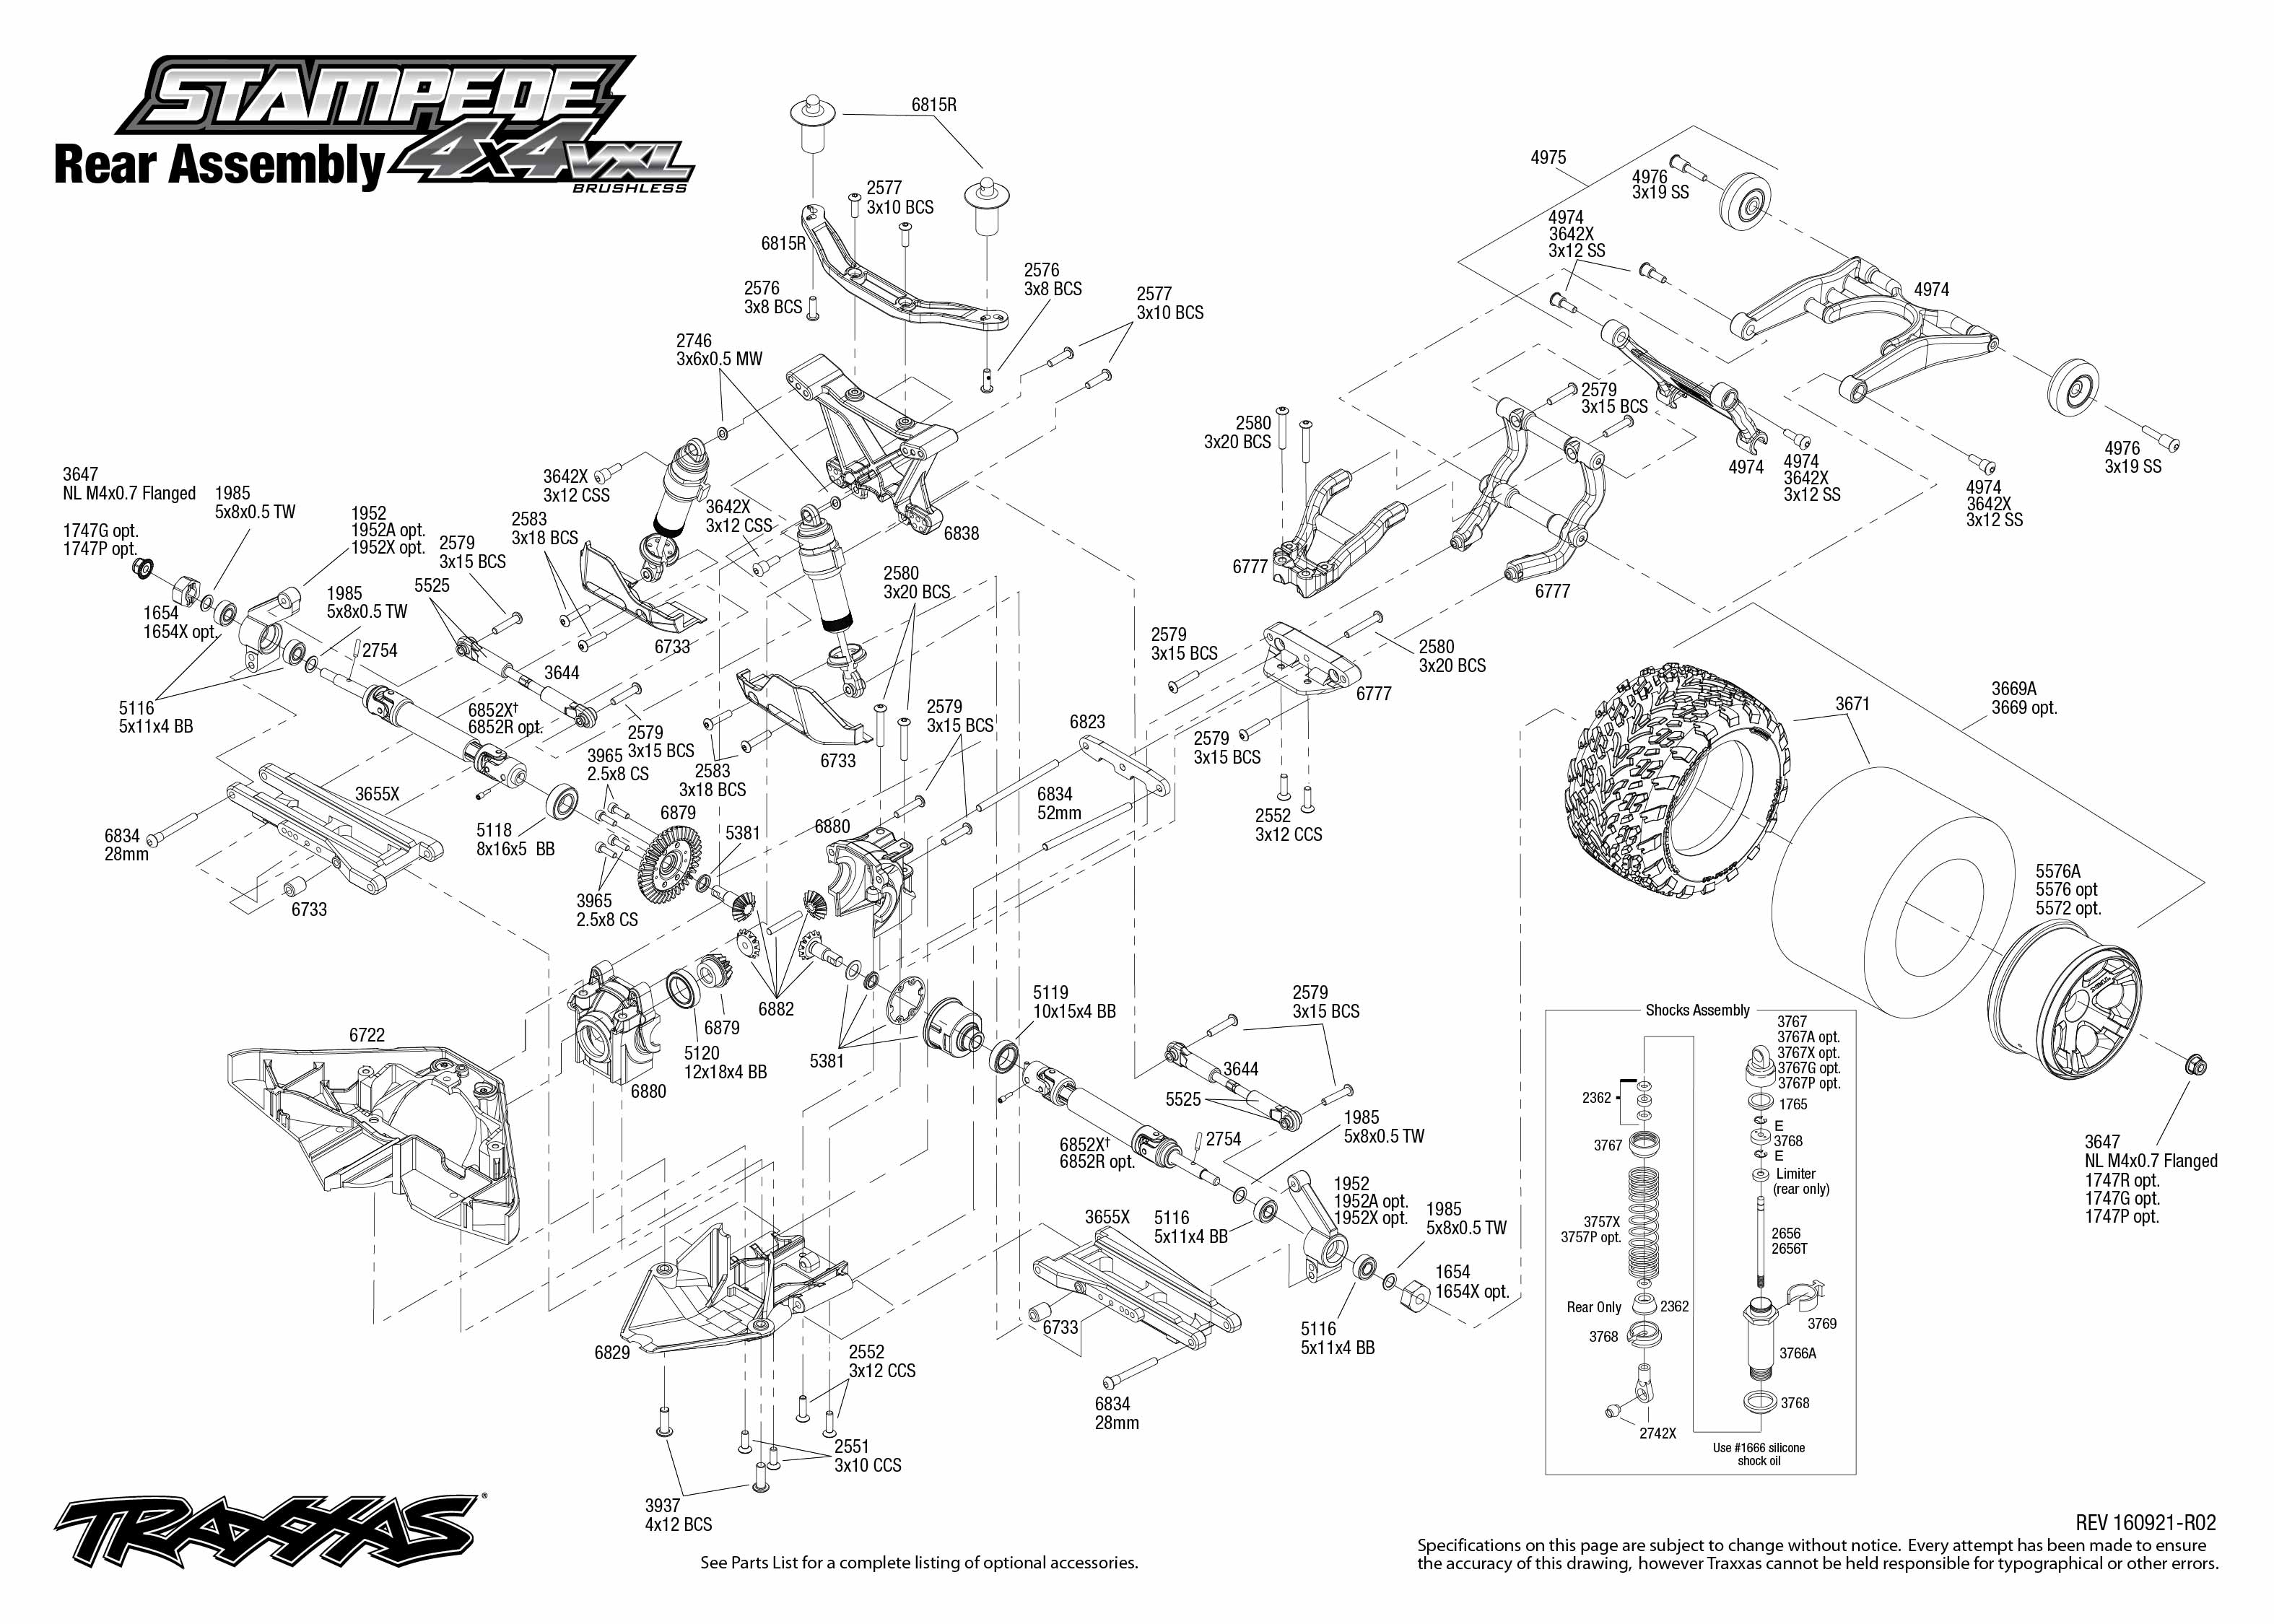 Traxxas Slash 2wd Manual Parts Rustler Brushed Quick Start Exploded View Free User Guide U Co Stampede Vxl 3150x2250